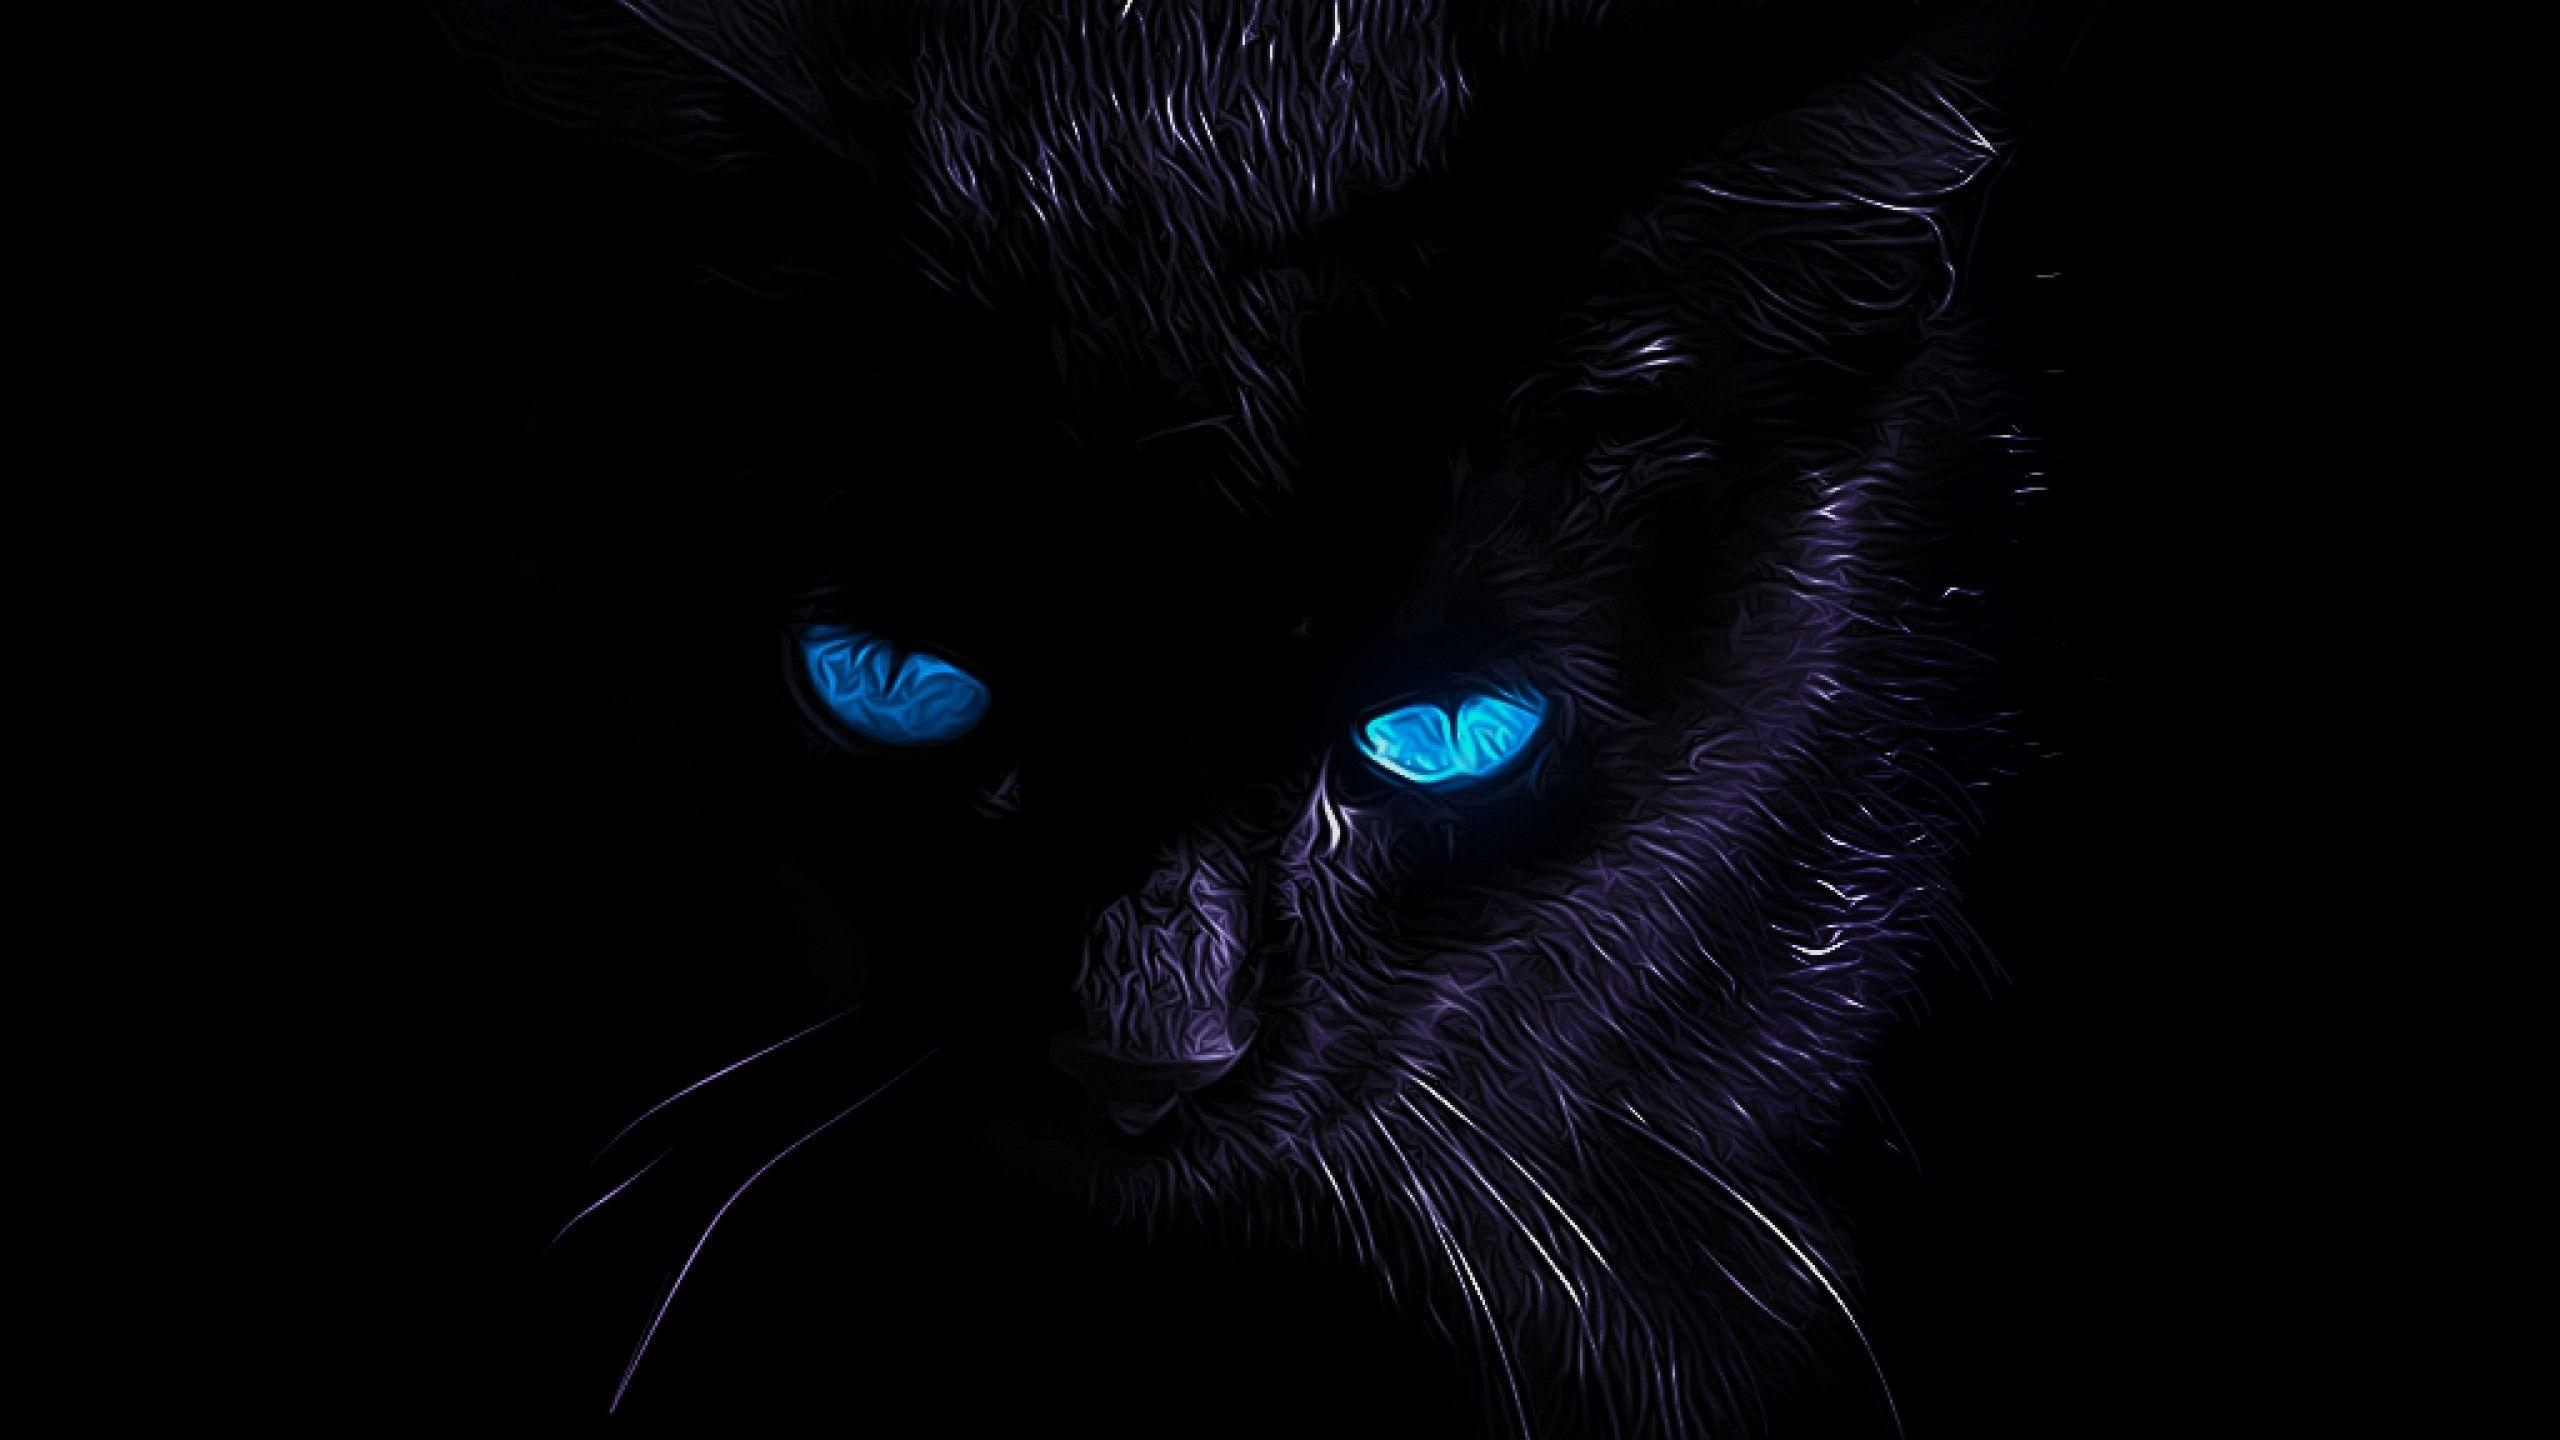 Blue Eyes Cat Wallpapers Wallpaper Cave